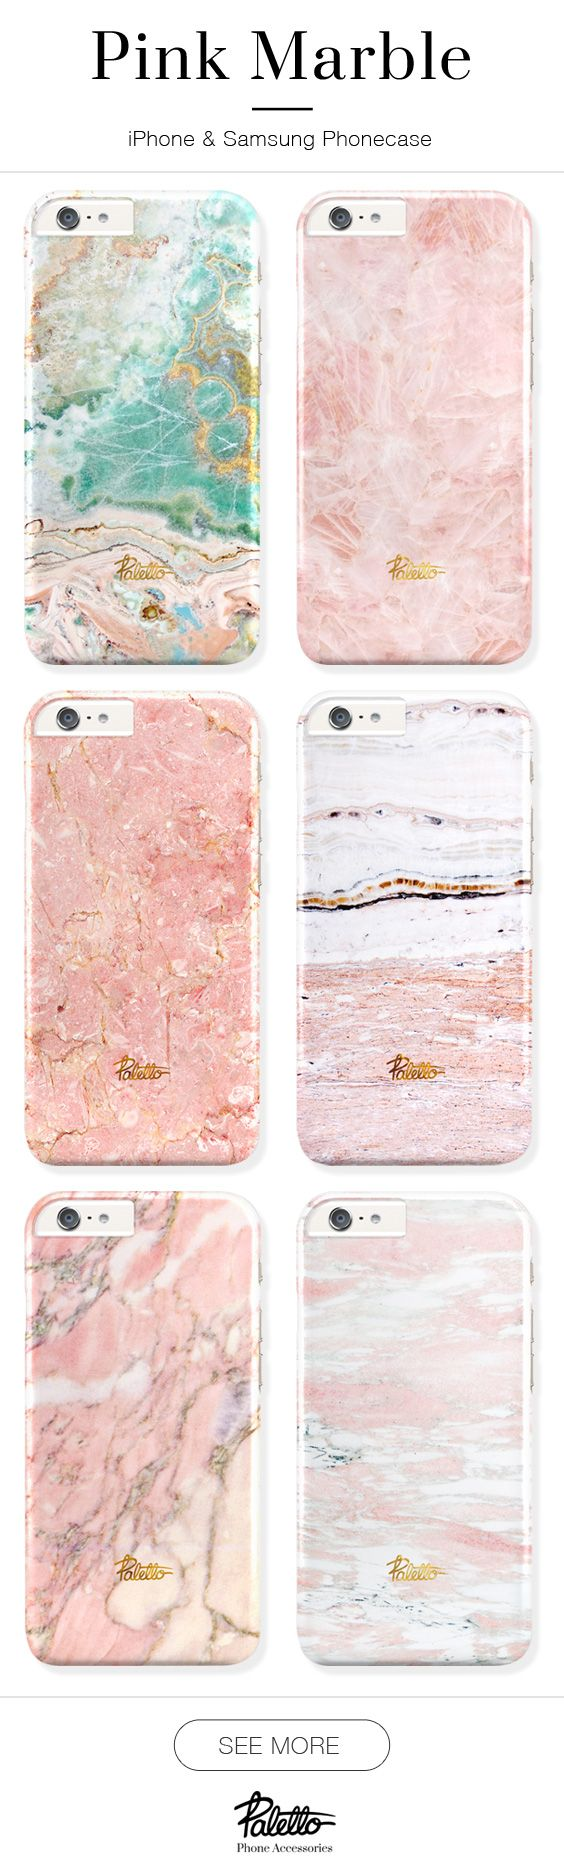 PINK marble phone case. Available for iPhone 6/6s, 6/6s plus, 5/5s/5c & Samsung galaxy S5, S6. Free shipping worldwide.: